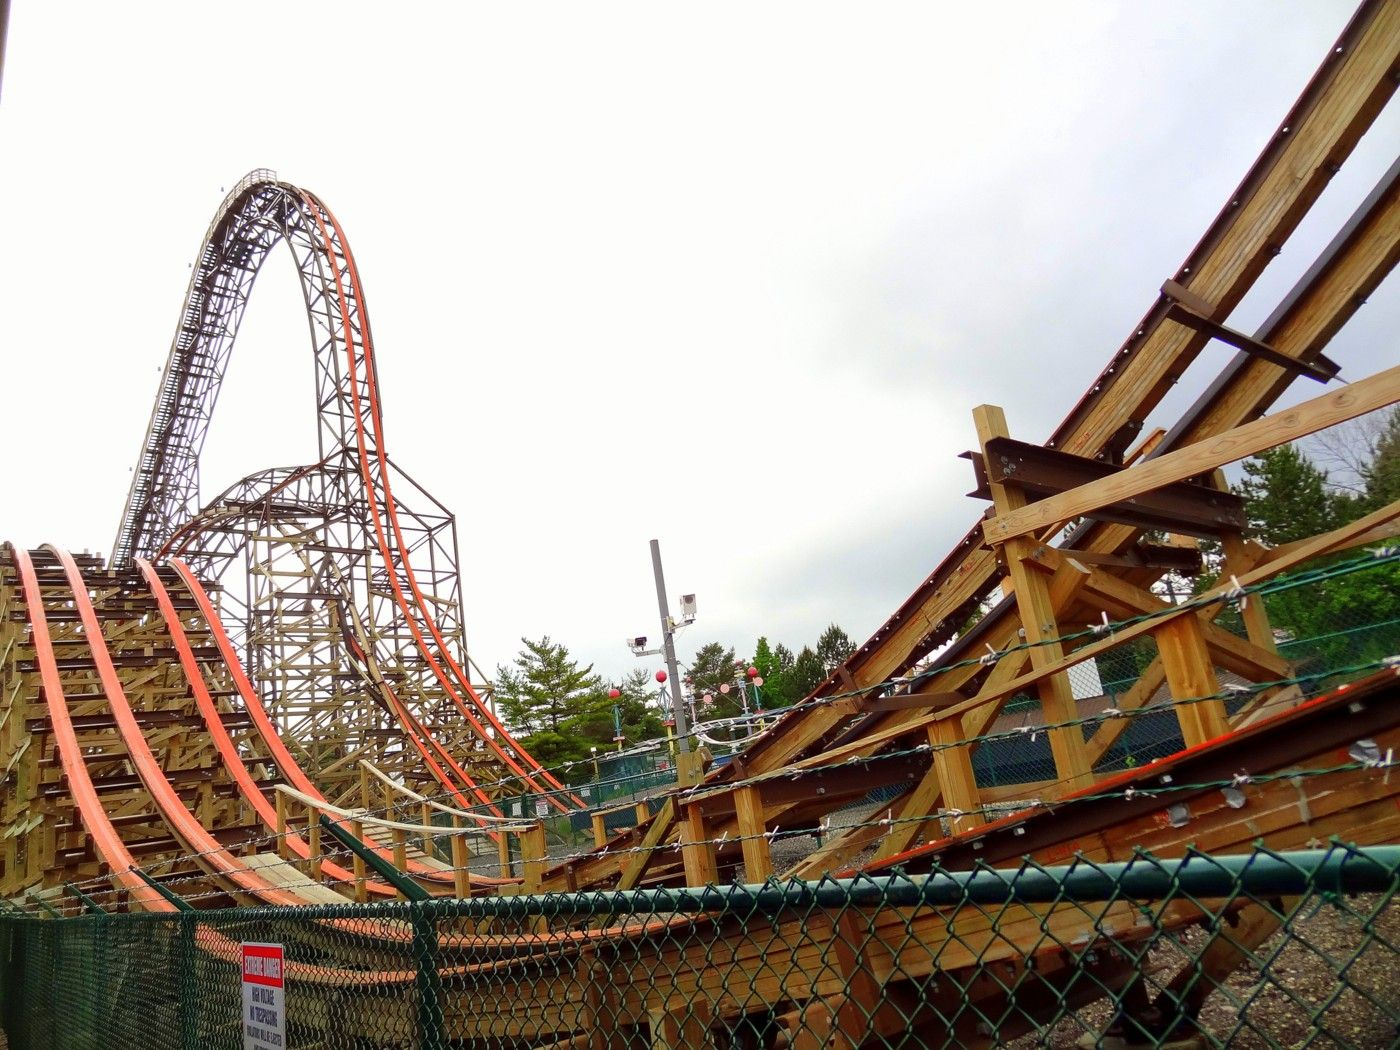 Six Flags Great America 2015 Update Coaster101 Great America Roller Coaster Theme Park